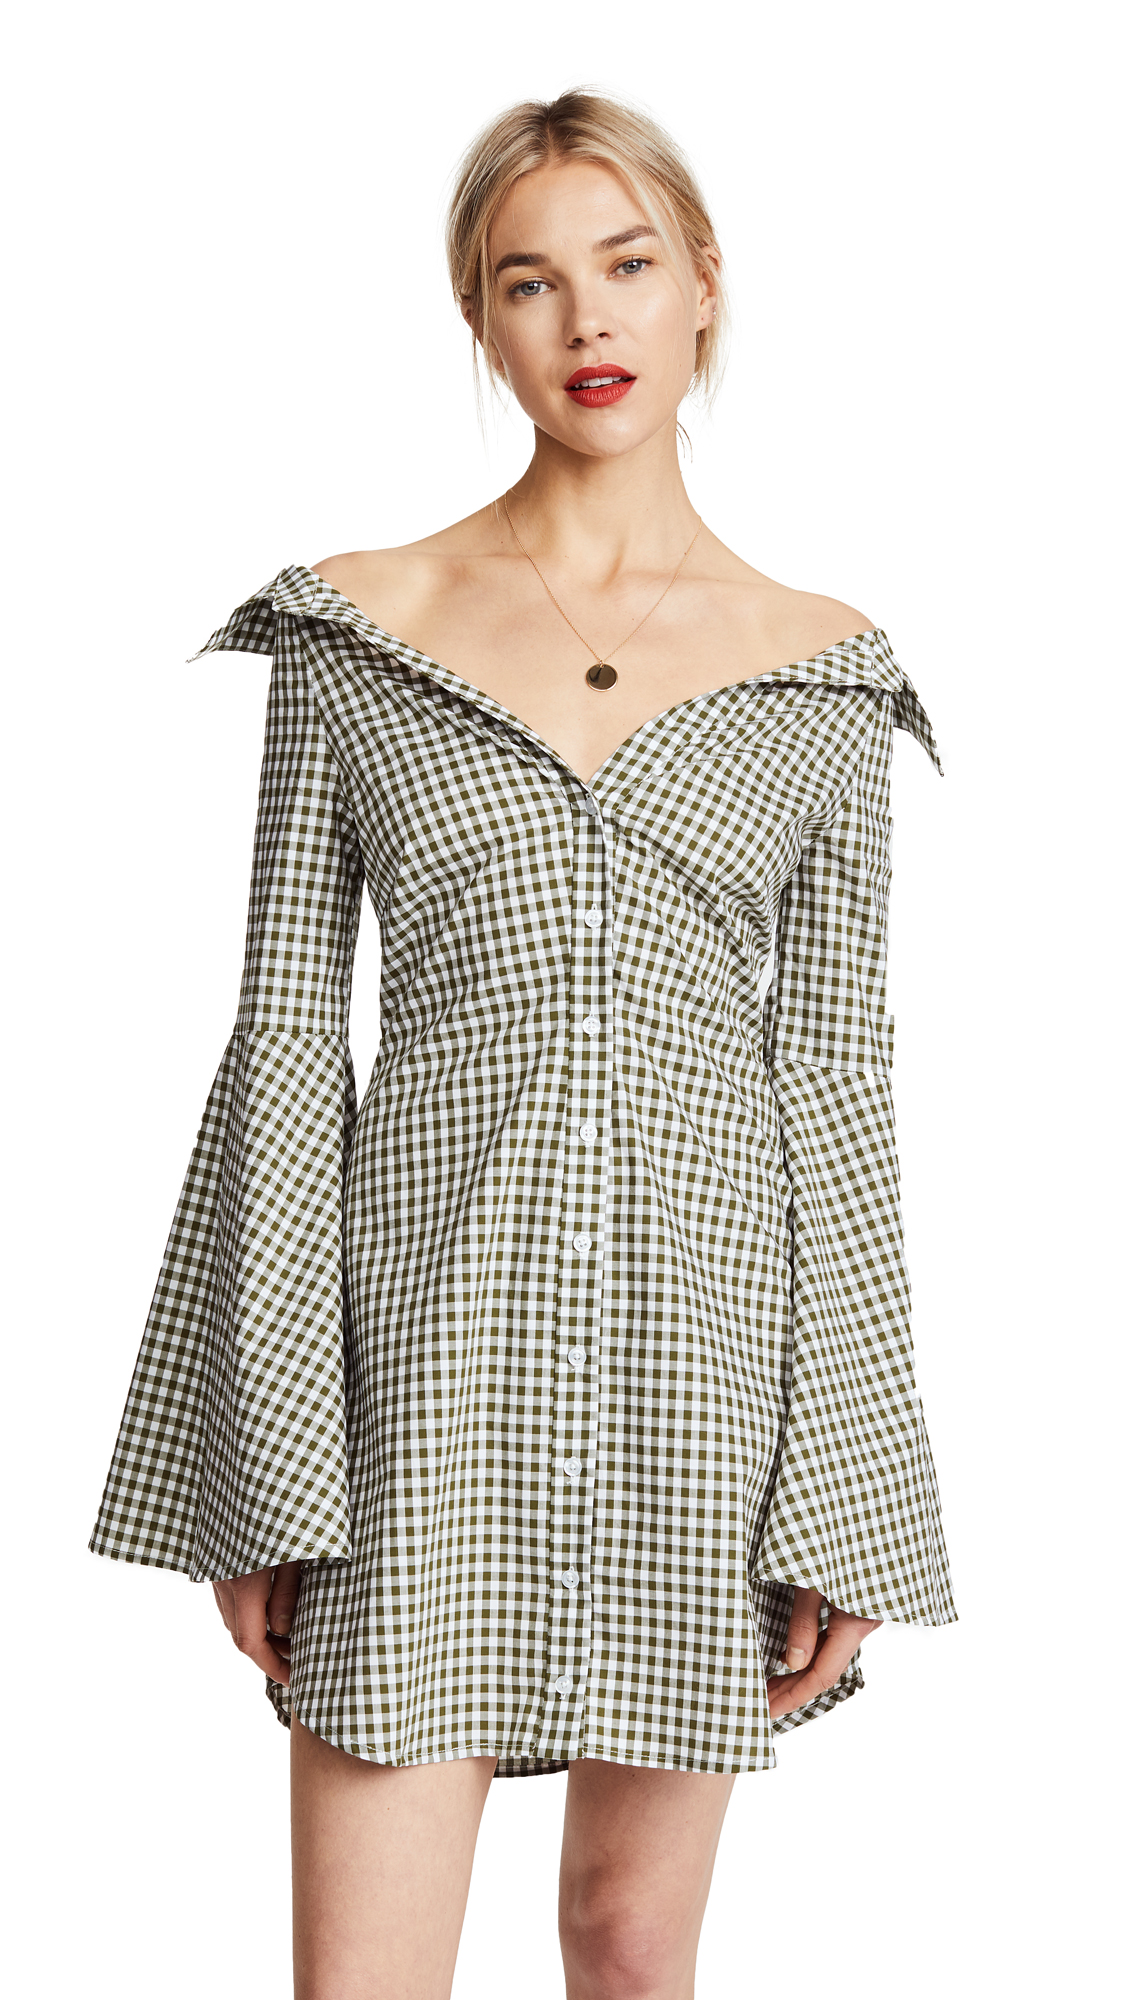 Caroline Constas Persephone Mini Dress - Olive Gingham